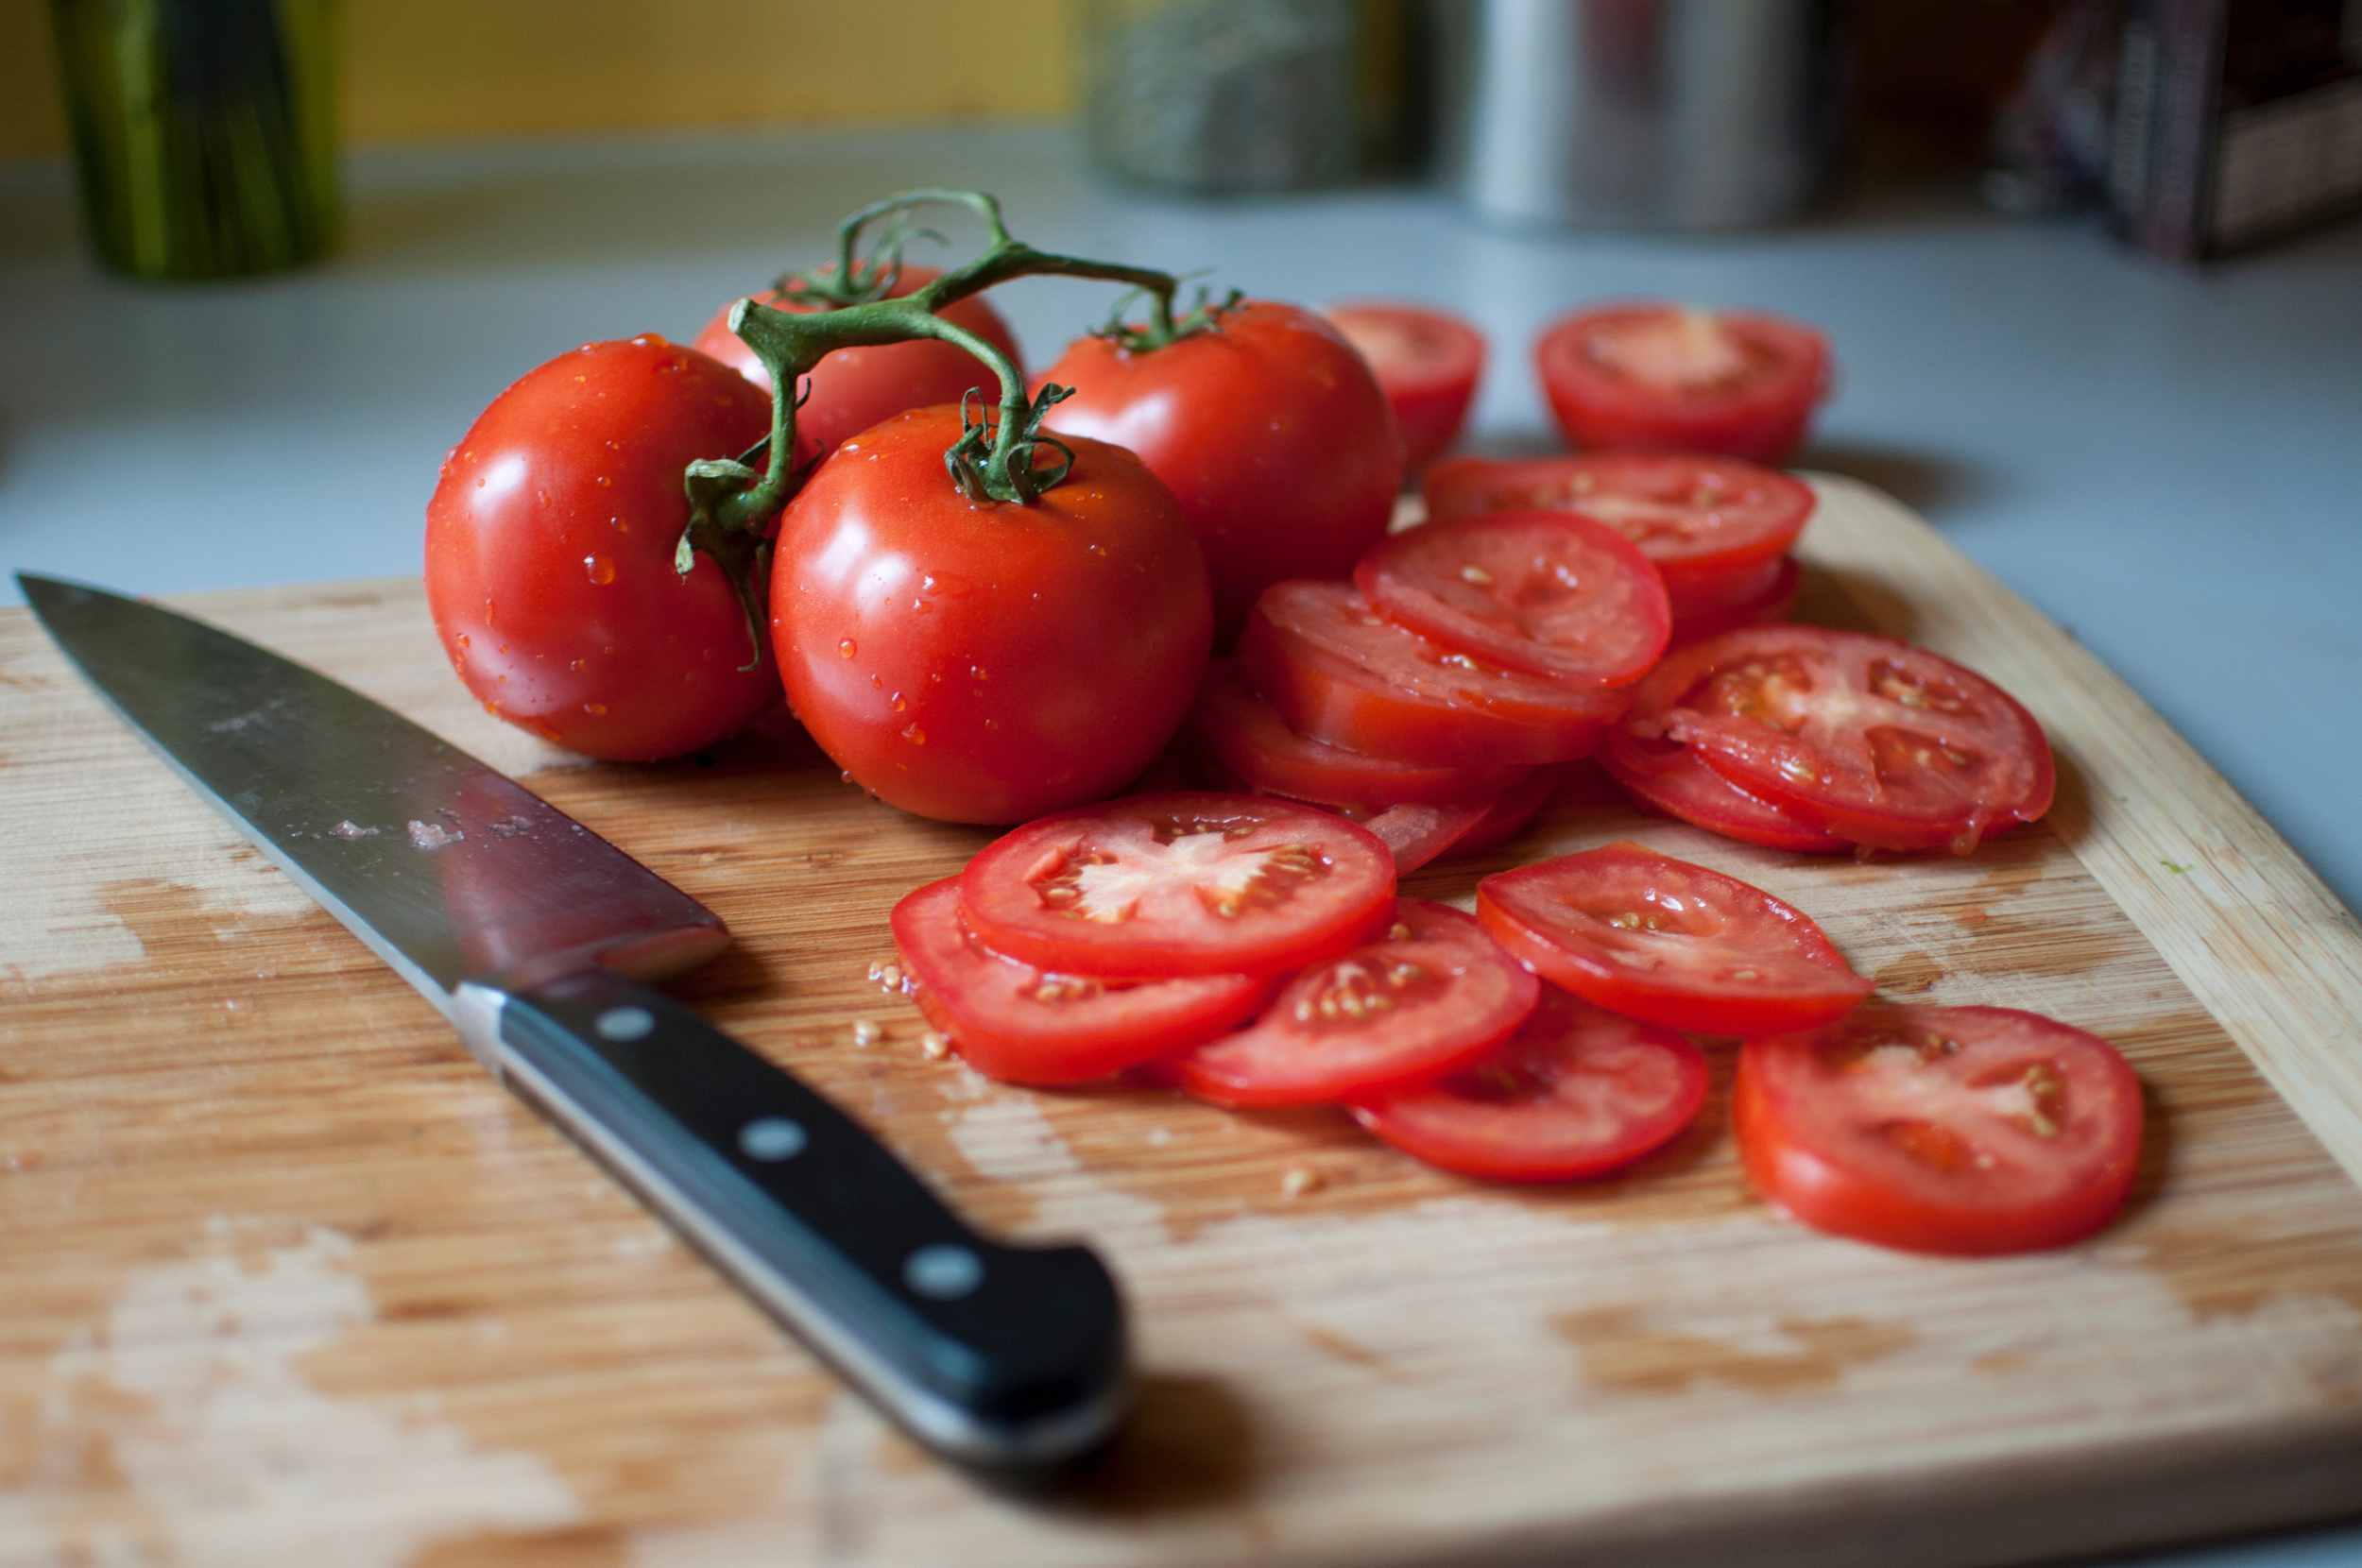 Sliced tomatoes on cutting board